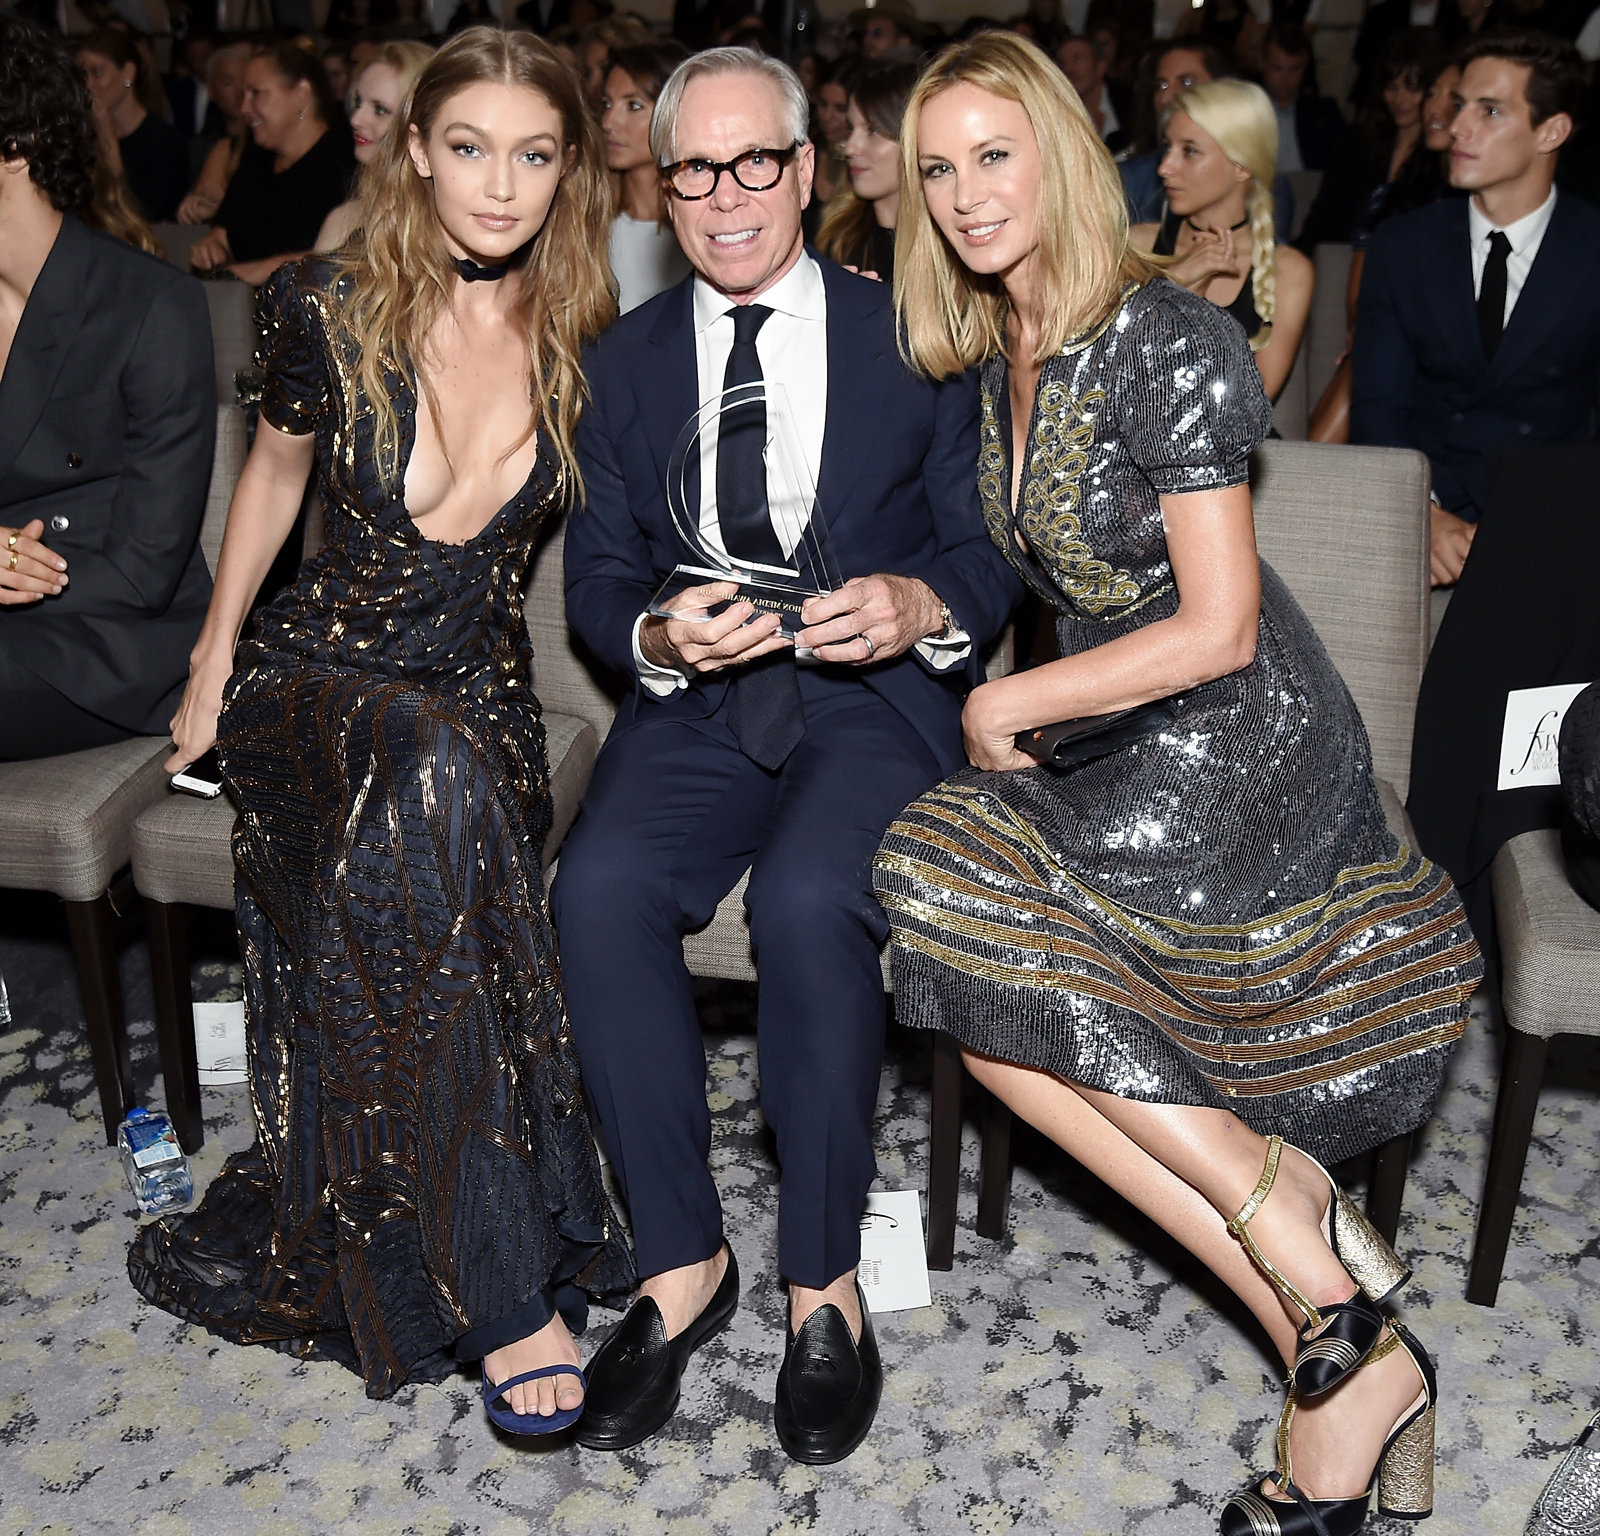 Gigi Hadid, designer Tommy Hilfiger, and Dee Ocleppo Hilfiger attends the The Daily Front Row's 4th Annual Fashion Media Awards at Park Hyatt New York on September 8, 2016 in New York City